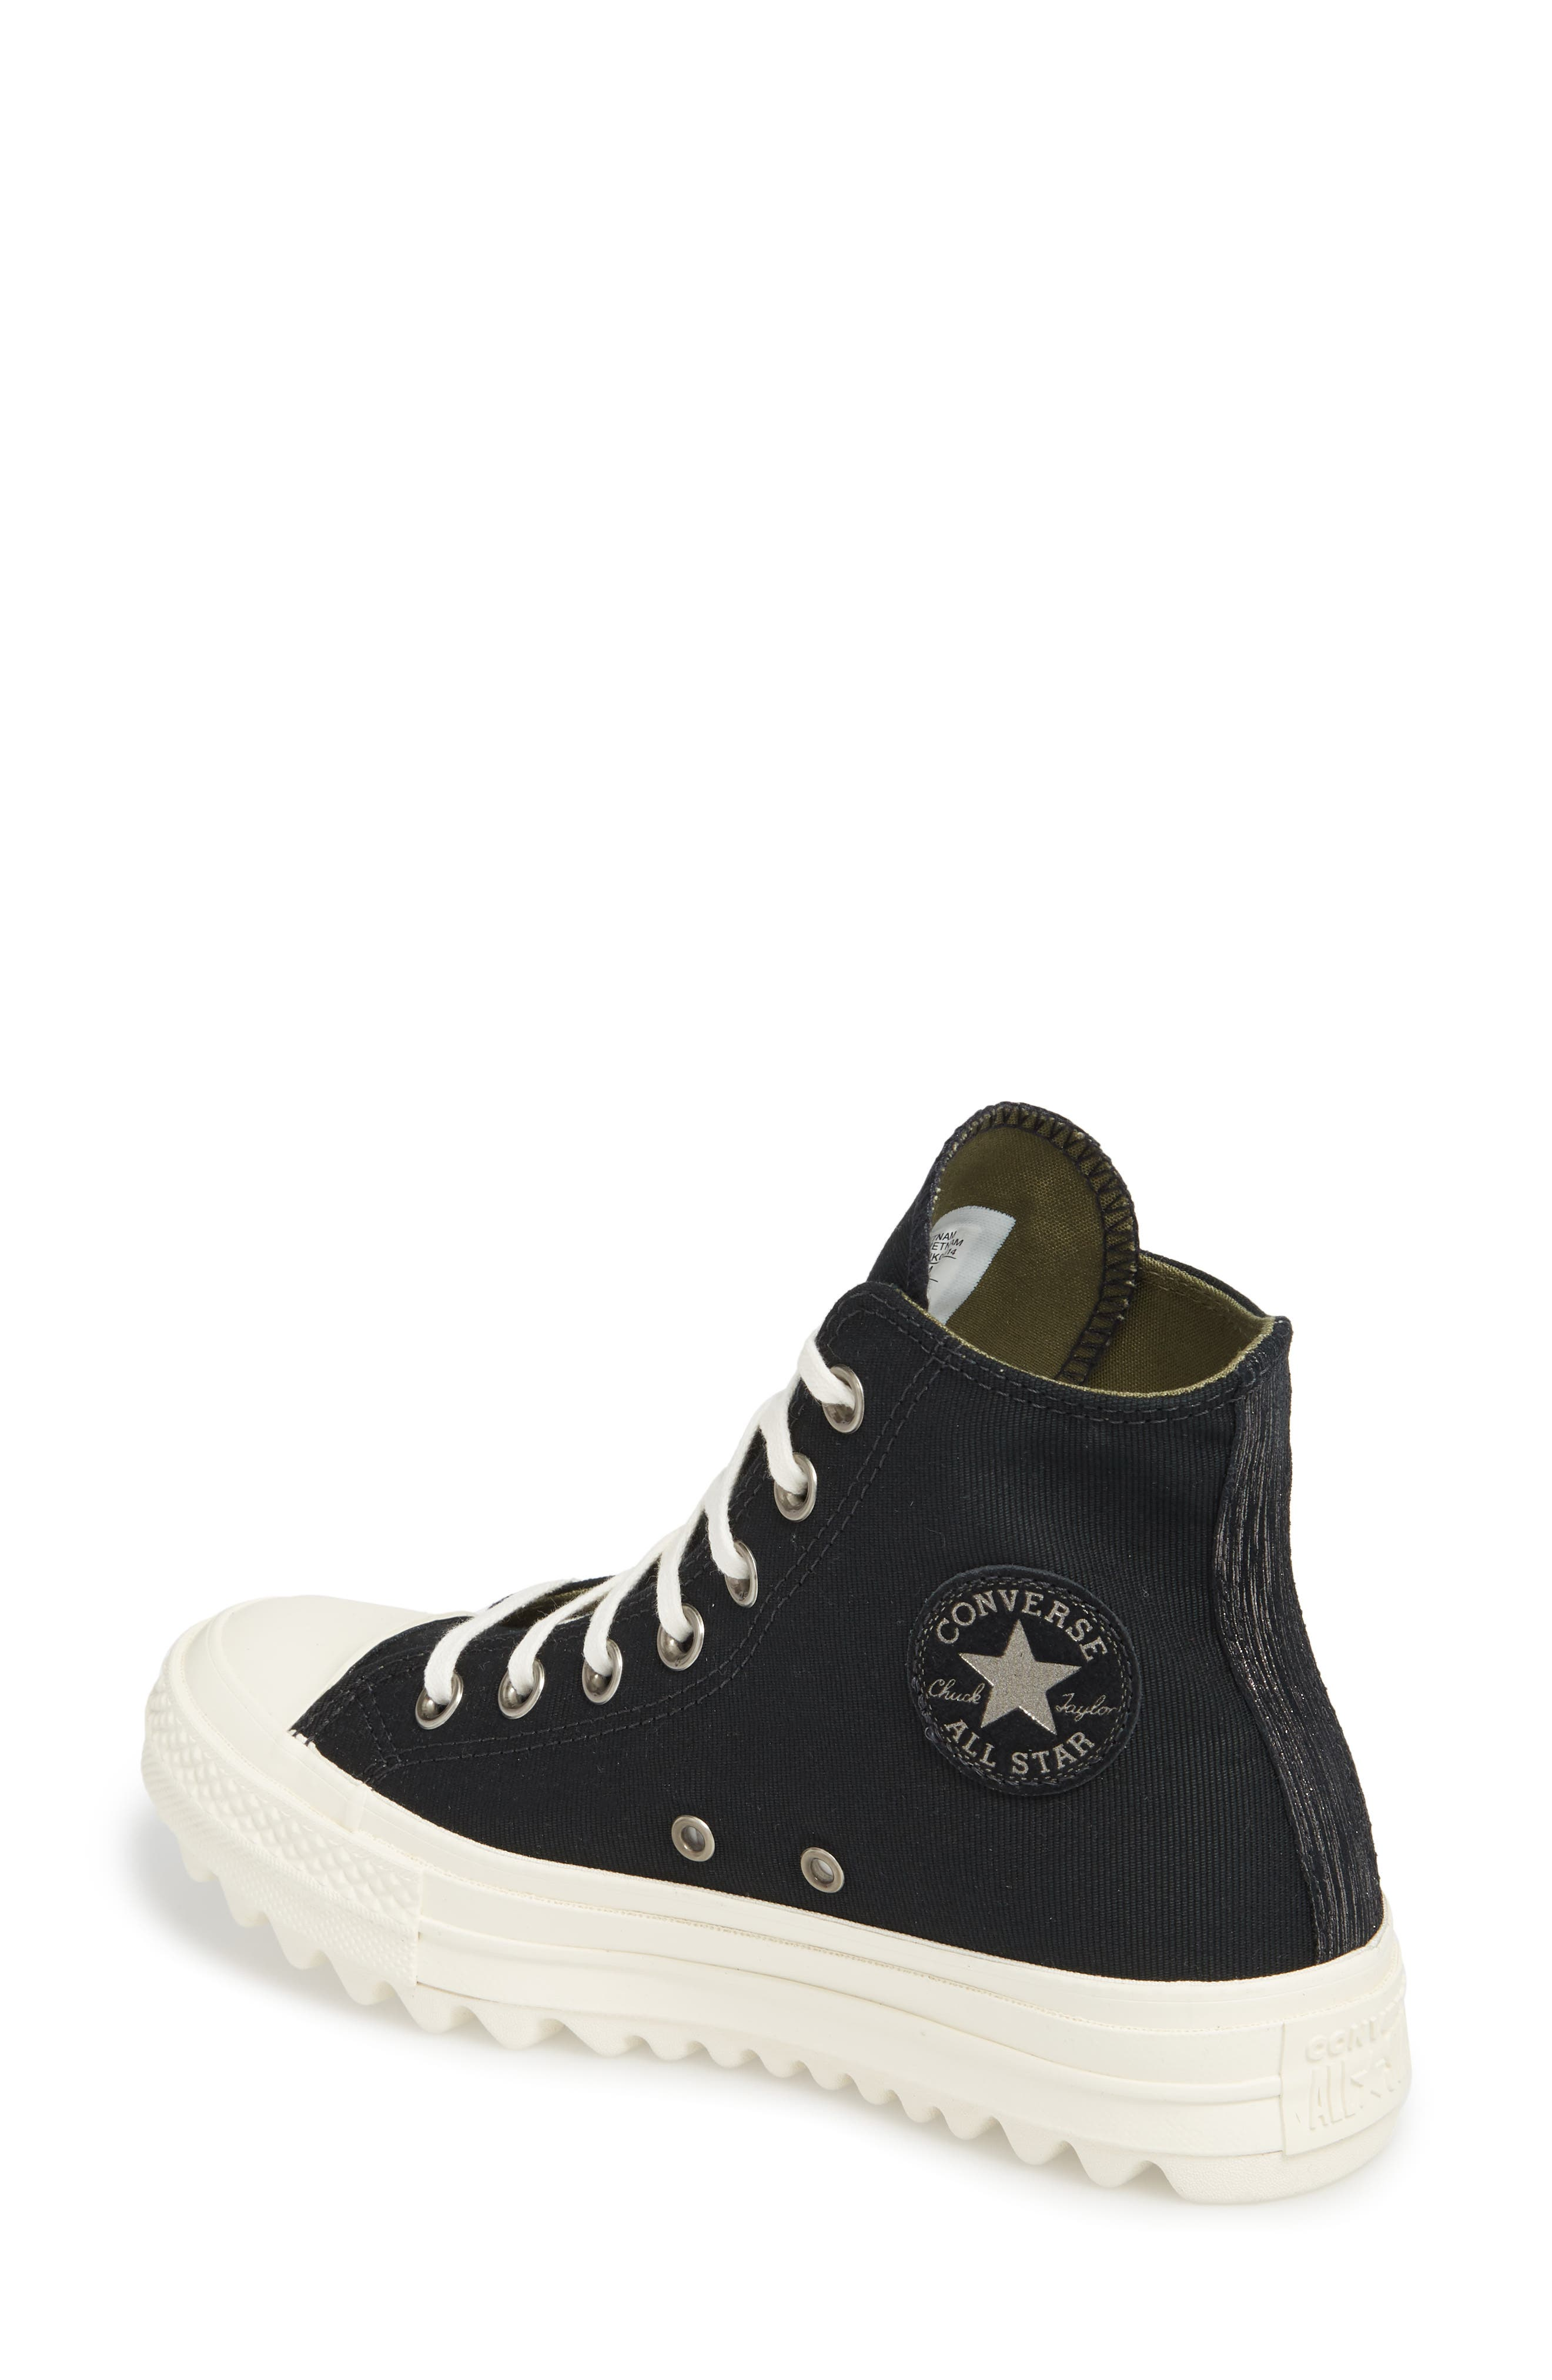 Chuck Taylor<sup>®</sup> All Star<sup>®</sup> Ripple High Top Sneaker,                             Alternate thumbnail 2, color,                             001